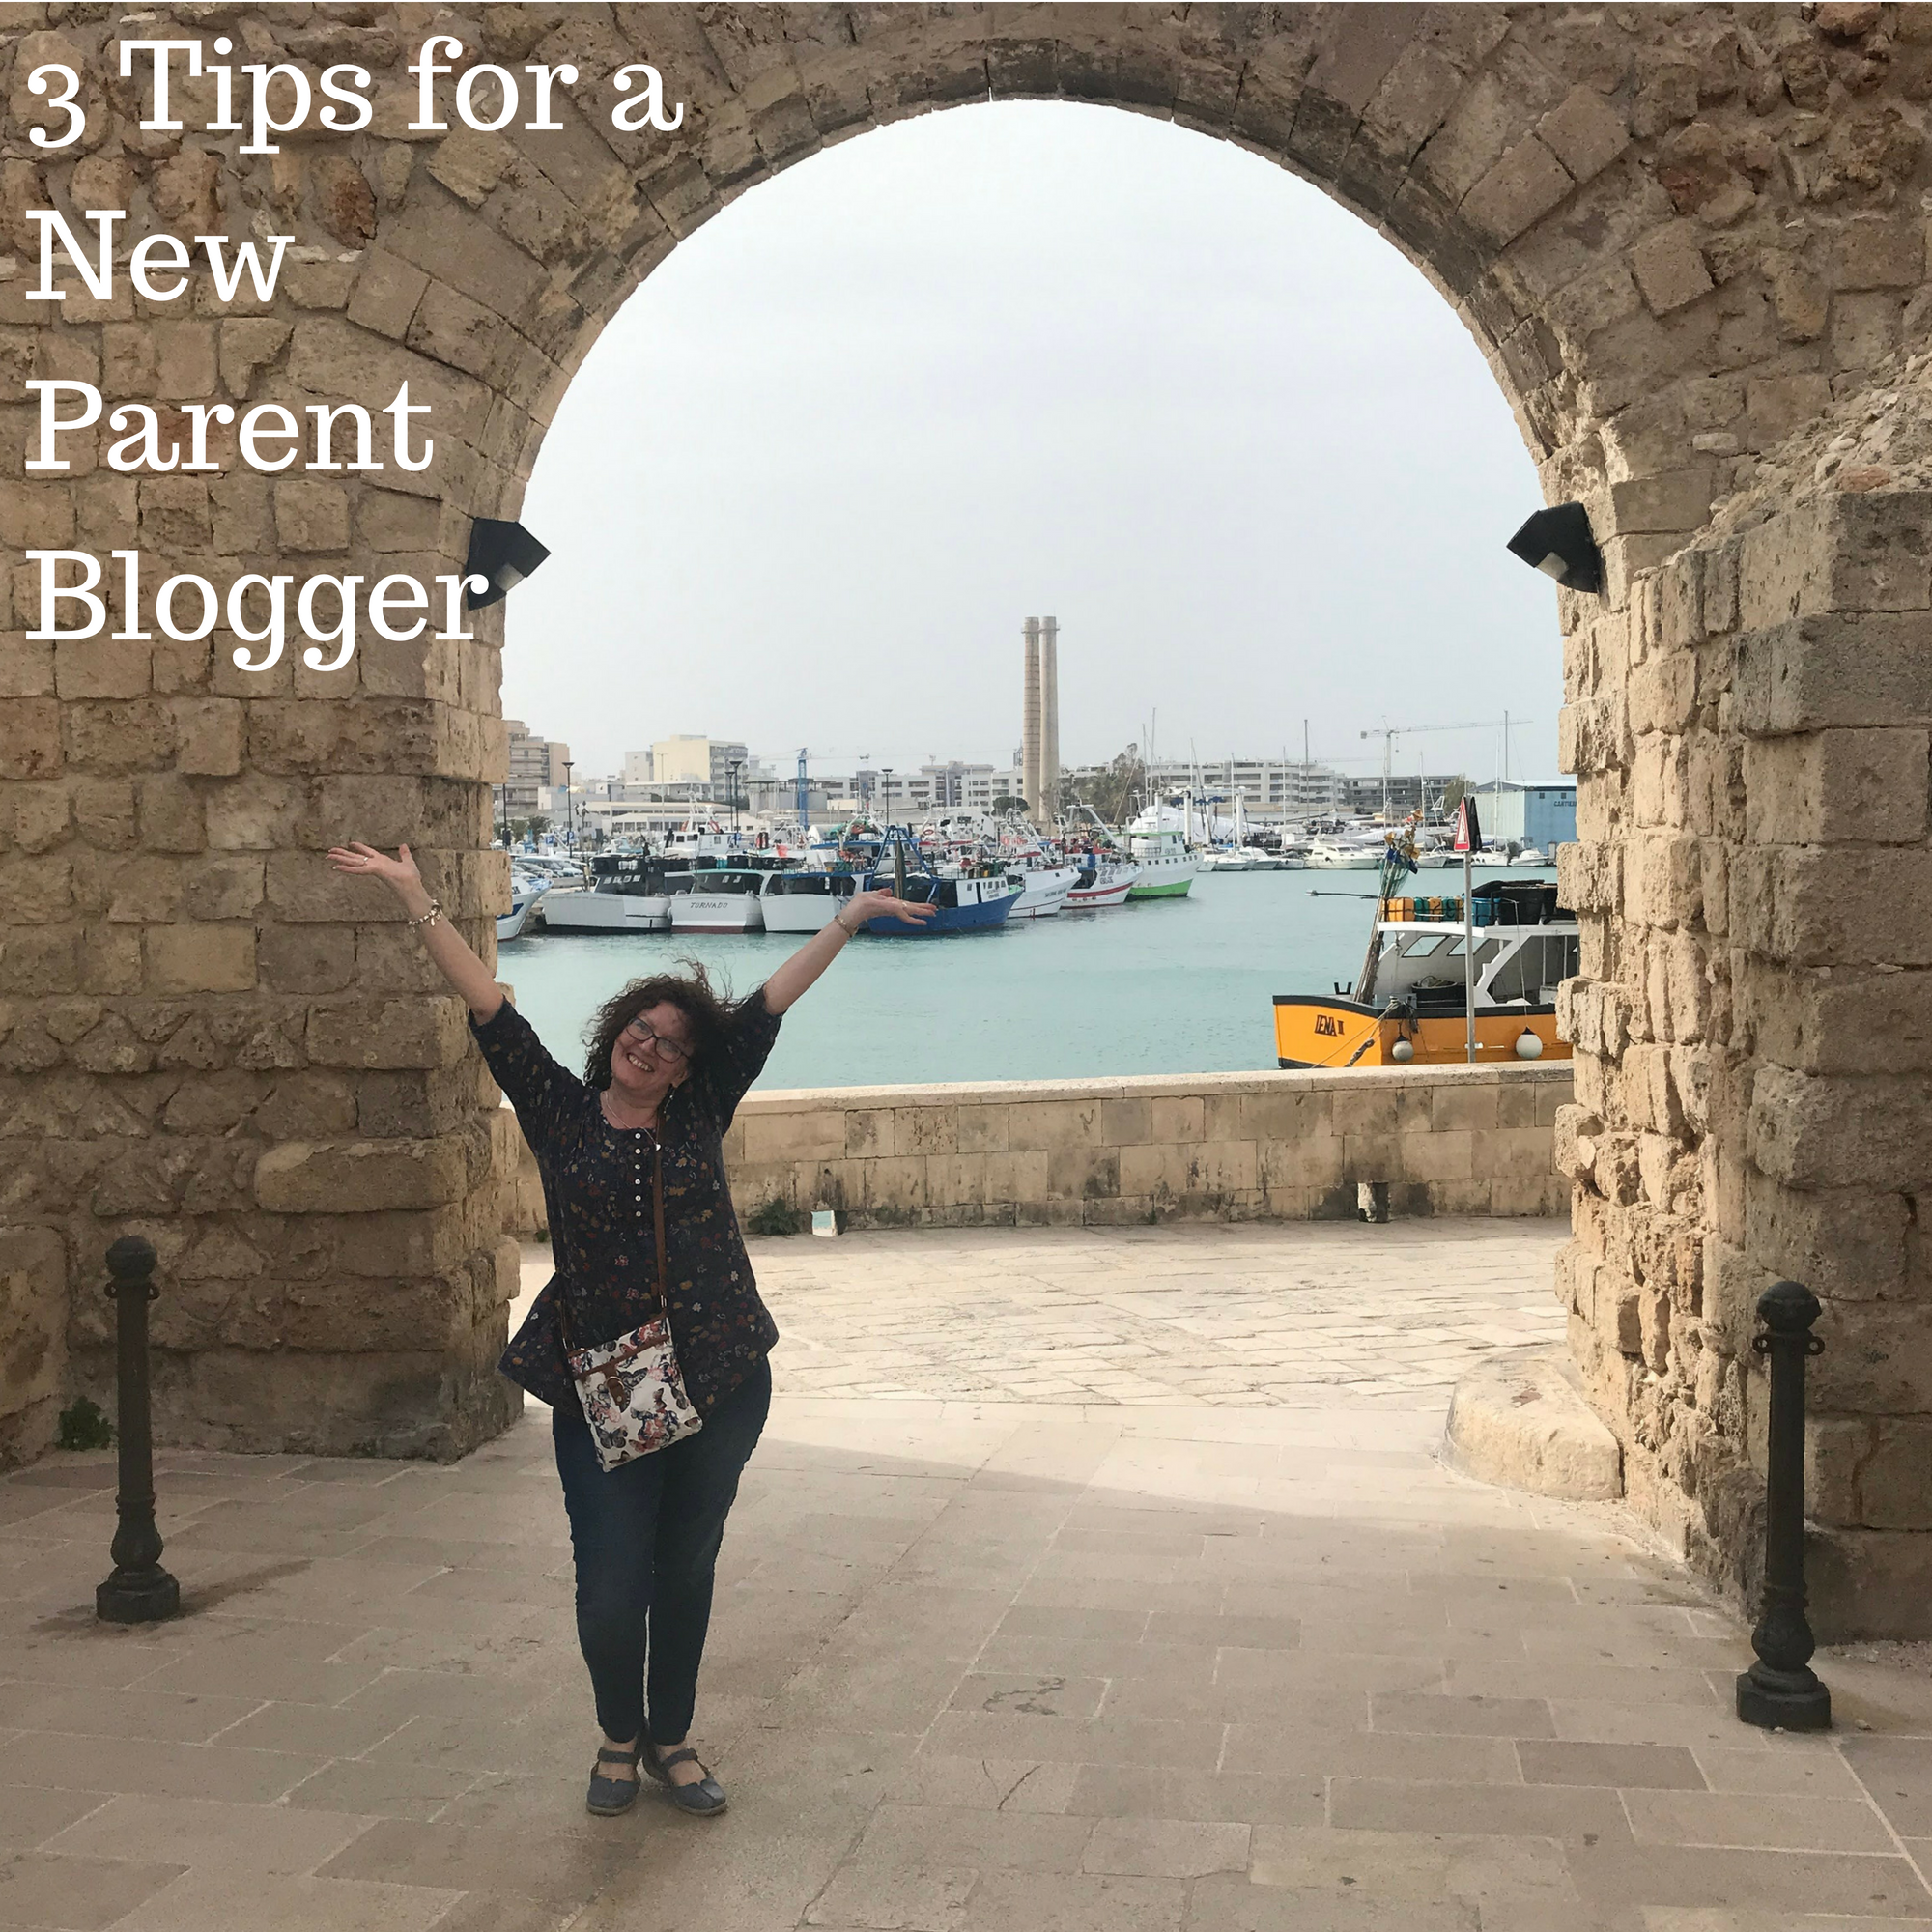 3 Tips for a New Parent Blogger